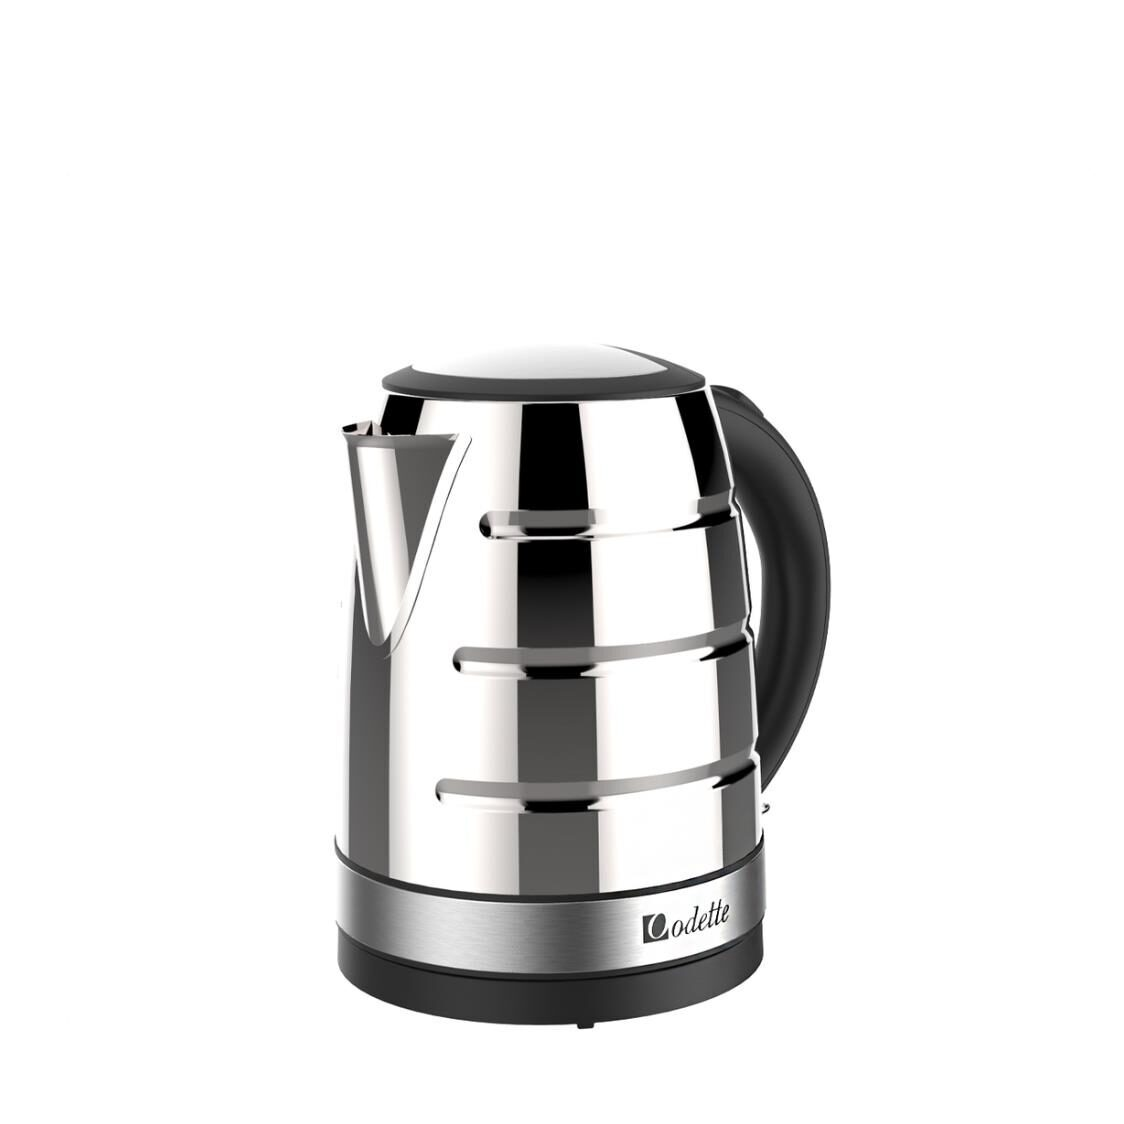 17L Electric Kettle Polished Stainless Steel WK8330LL01